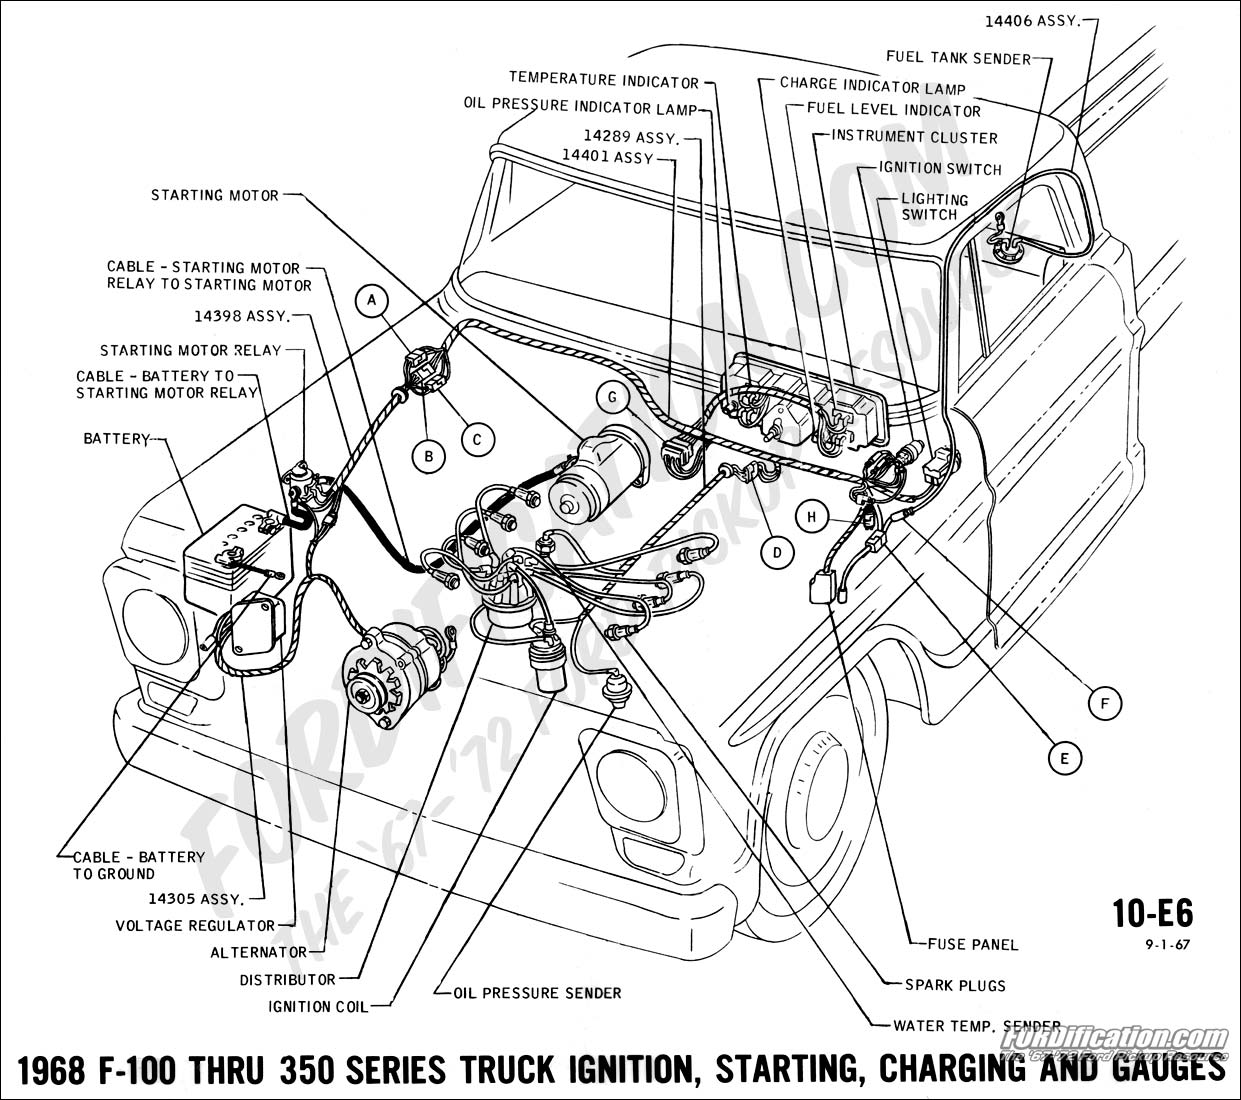 1970 Chevy C10 Alternator Wiring Diagram Wiring Diagram